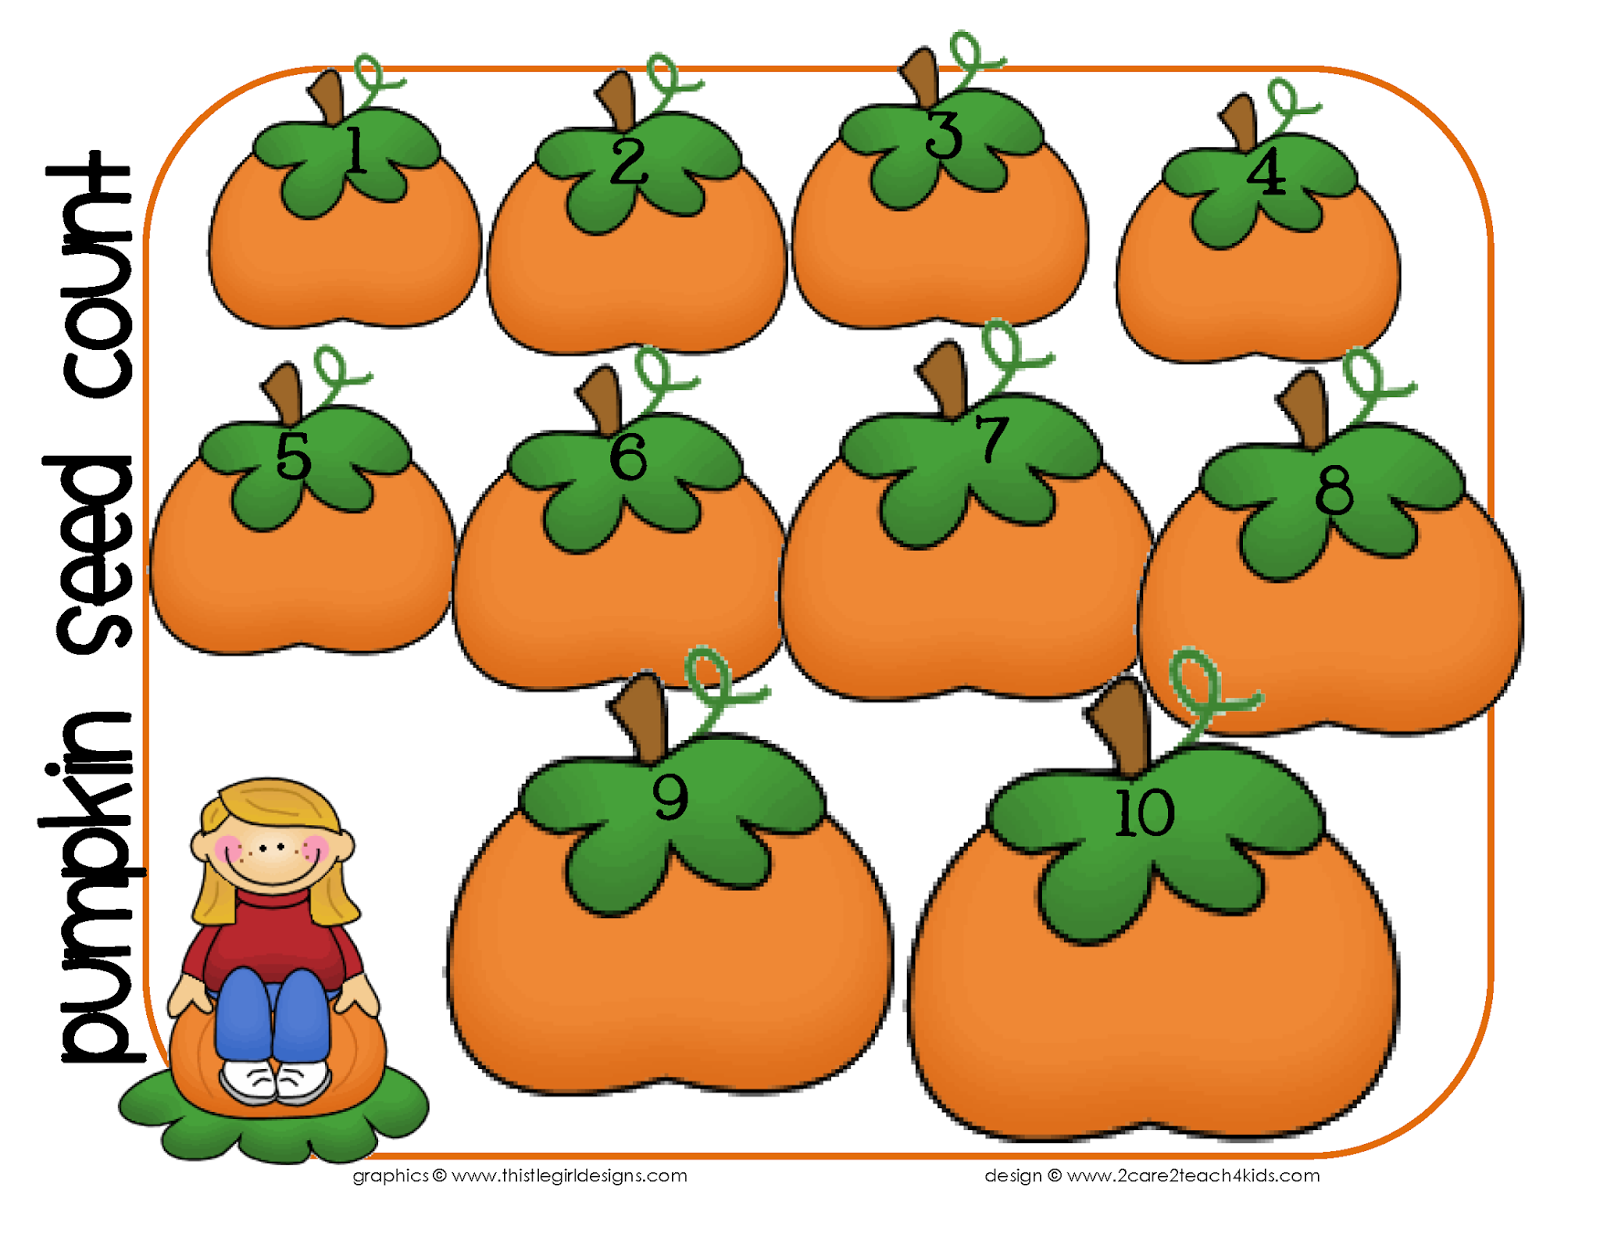 2care2teach4kids Pumpkin Picking Time A Patch Of Free